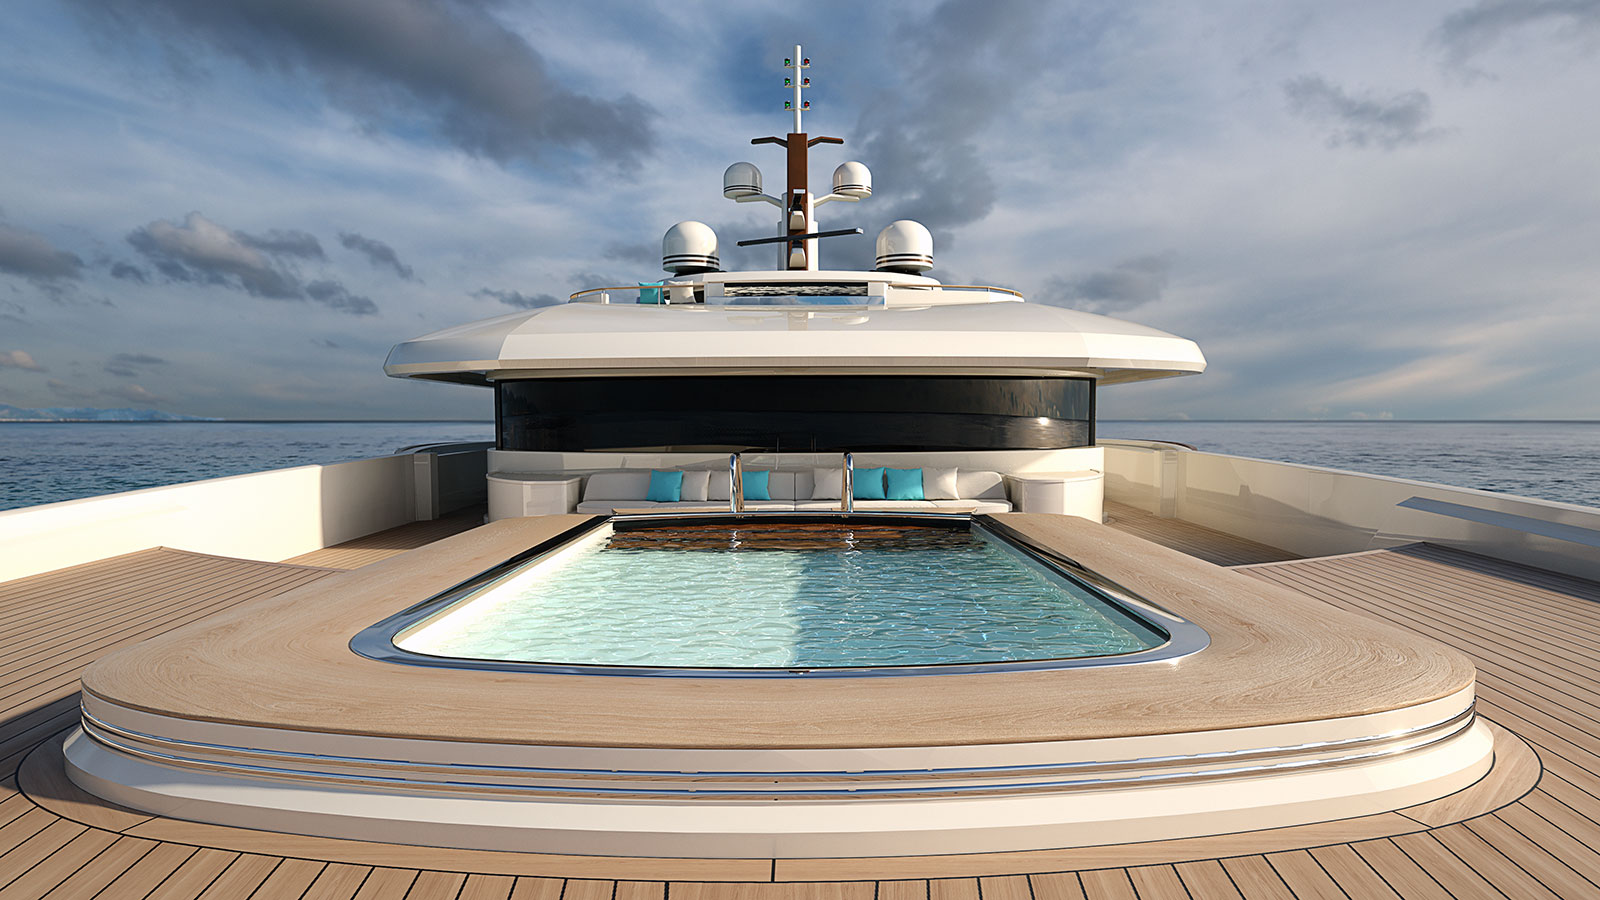 the-foredeck-of-the-griffin-66-superyacht-concept-by-fincantieri-and-christopher-seymour-designs